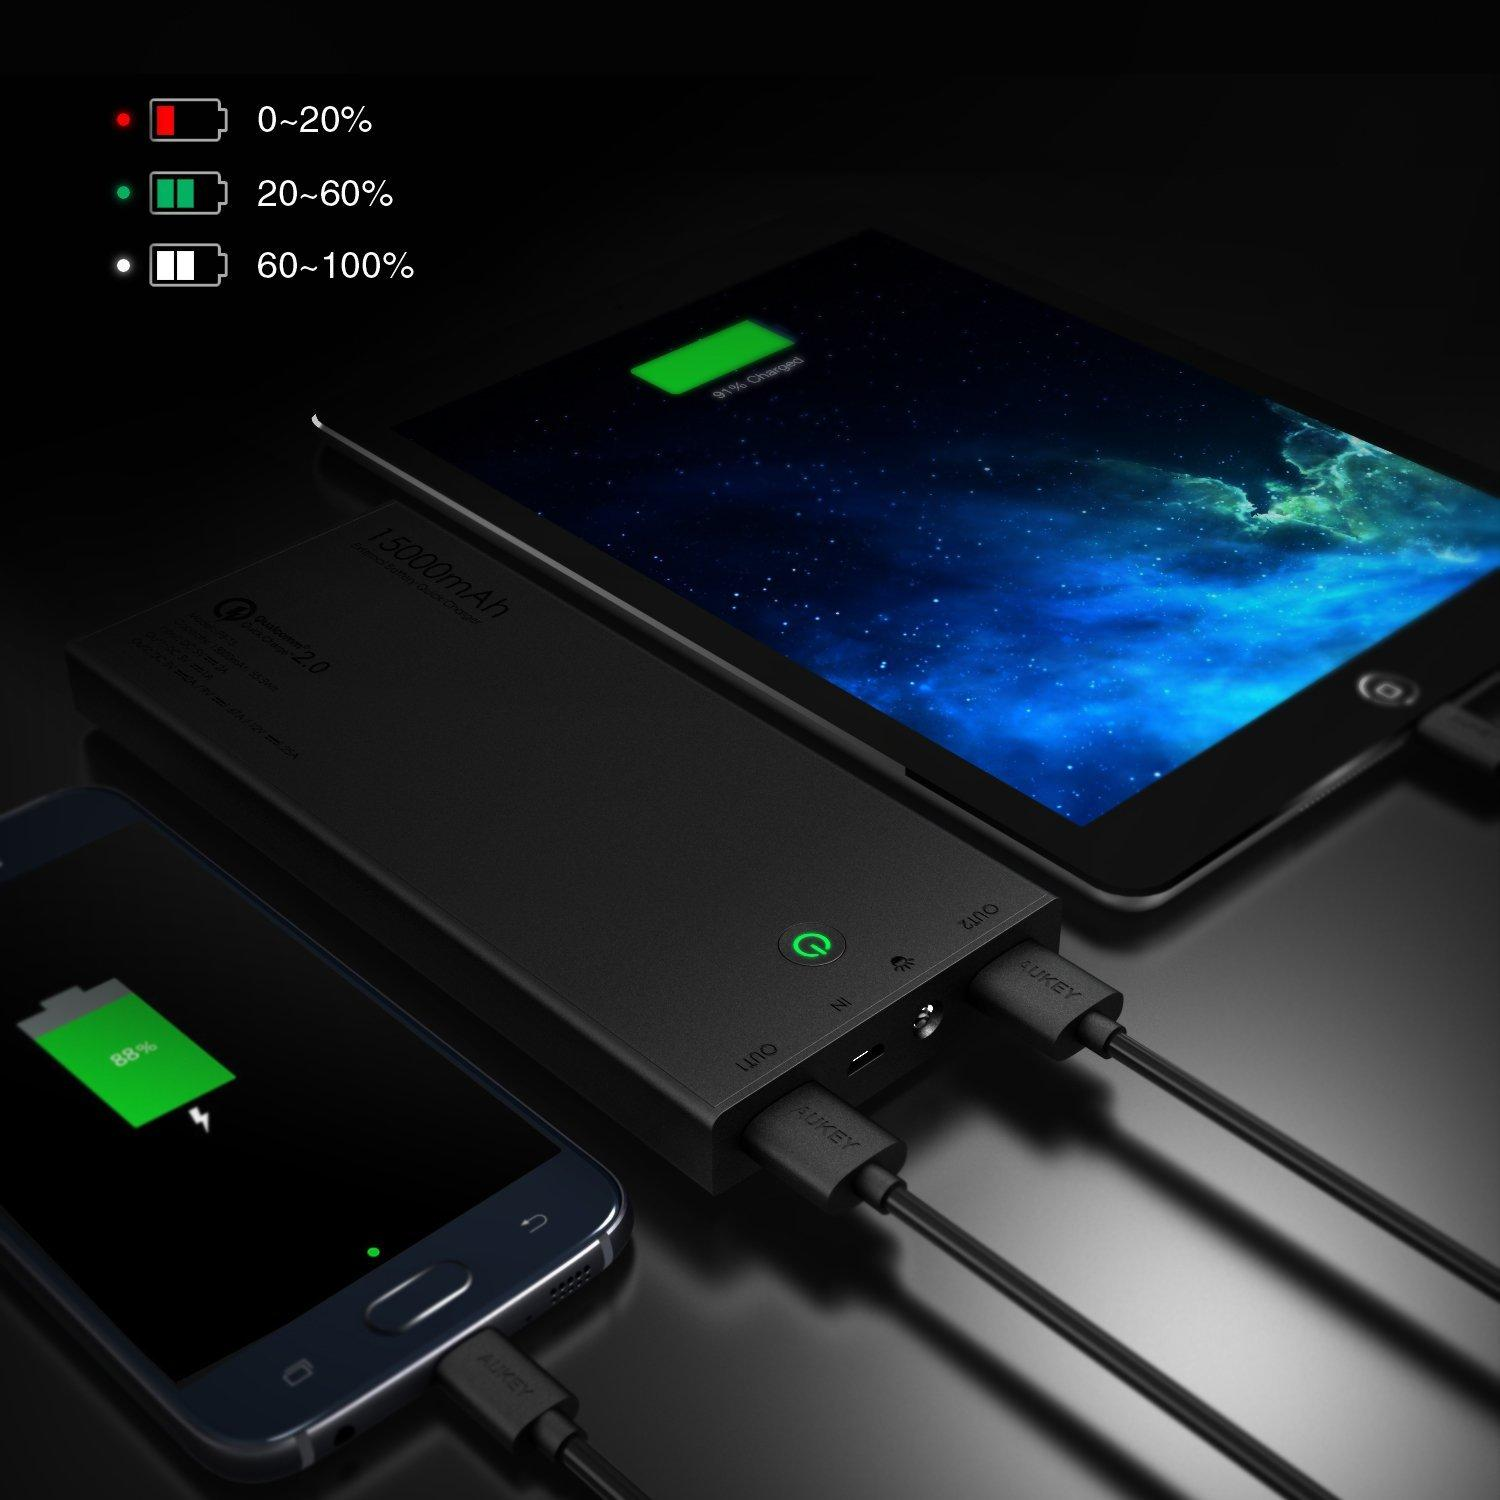 Aukey 15000mAh Portable External Battery Power Bank Fast Charger with Qualcomm Quick Charge 2.0